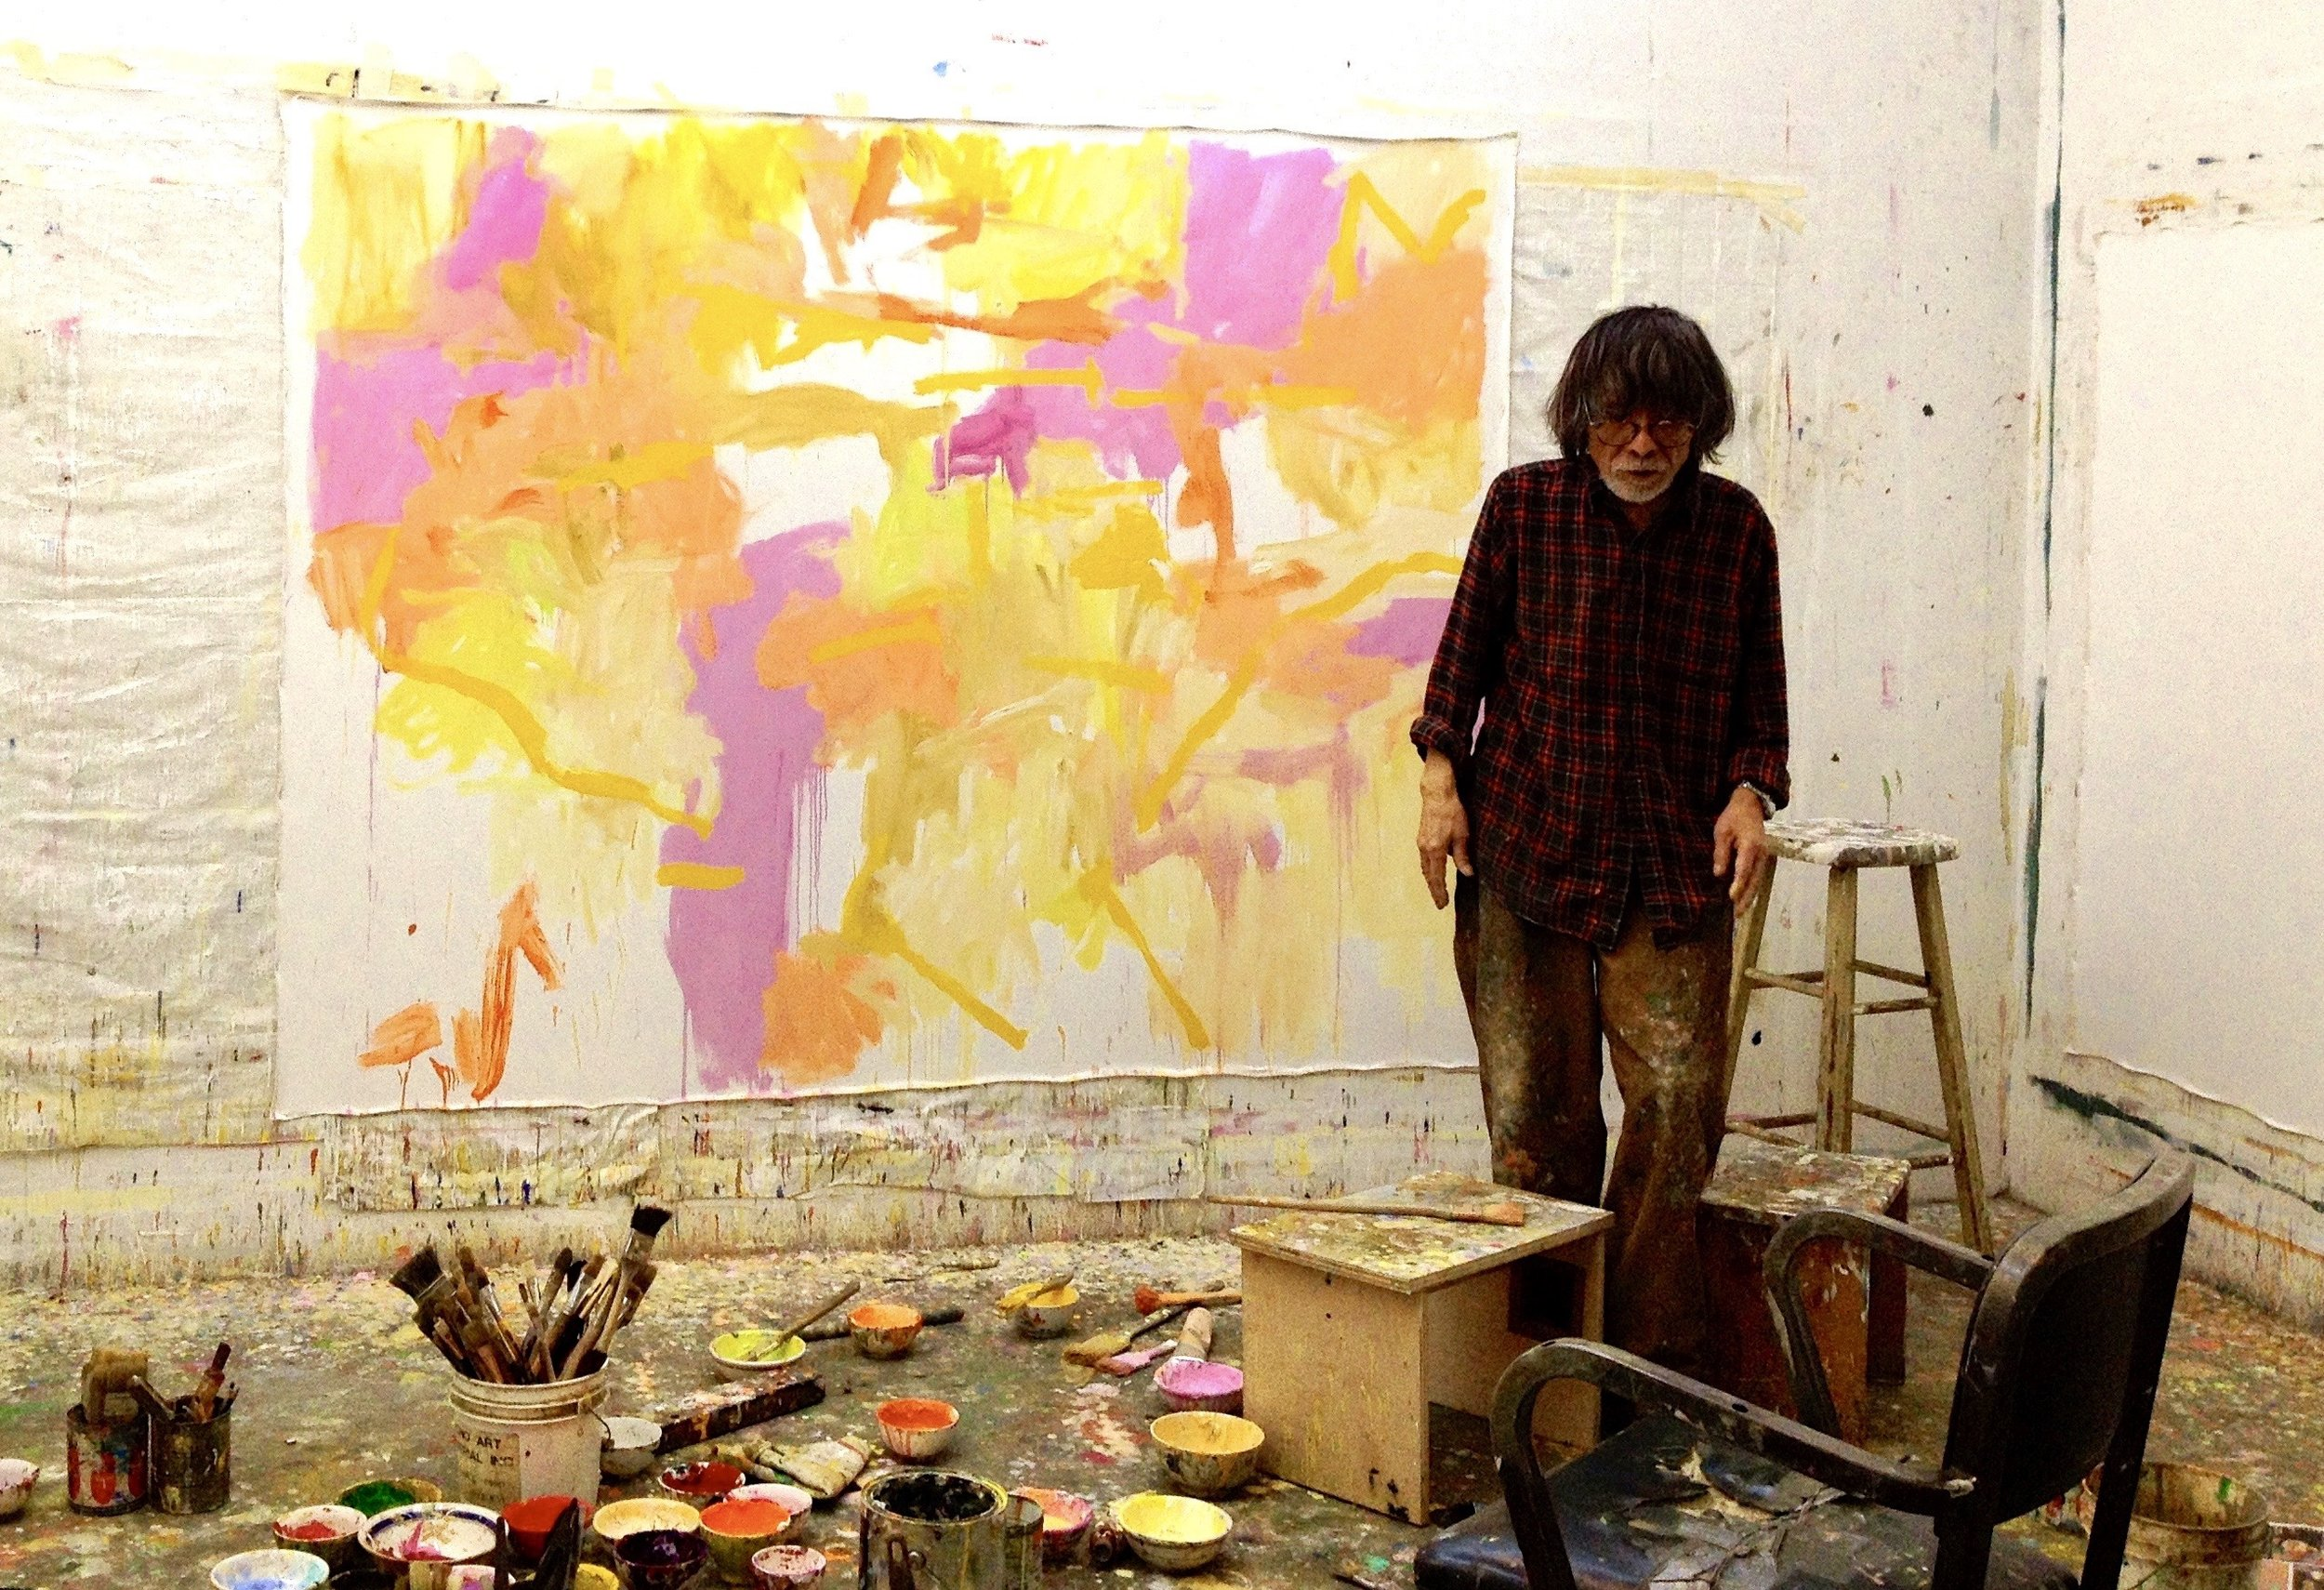 - Kikuo Saito (1939–2016) was a Japanese American abstract painter with ties to the Color Field tradition. Born in Tokyo, he came to New York City in 1966, where he worked as an assistant for such eminent painters as Helen Frankenthaler, Kenneth Noland, and Larry Poons.Saito's work infuses richly saturated colorscapes with delicately drawn lines. Saito was the creator of sui generis theatre and dance events, working under Ellen Stewart at La MaMa Experimental Theatre Company and collaborating with innovative and influential directors and choreographers Robert Wilson, Peter Brook, Jerome Robbins and Eva Maier.Saito's paintings have been featured in numerous solo and group shows worldwide, and are in the permanent collections of the Museum of Modern Art, the Aldrich Contemporary Museums, and numerous private and corporate collections. KinoSaito, a non-profit museum and art space in Verplanck, New York, will open in 2020, in honor of Saito's interdisciplinary practice and spirit.